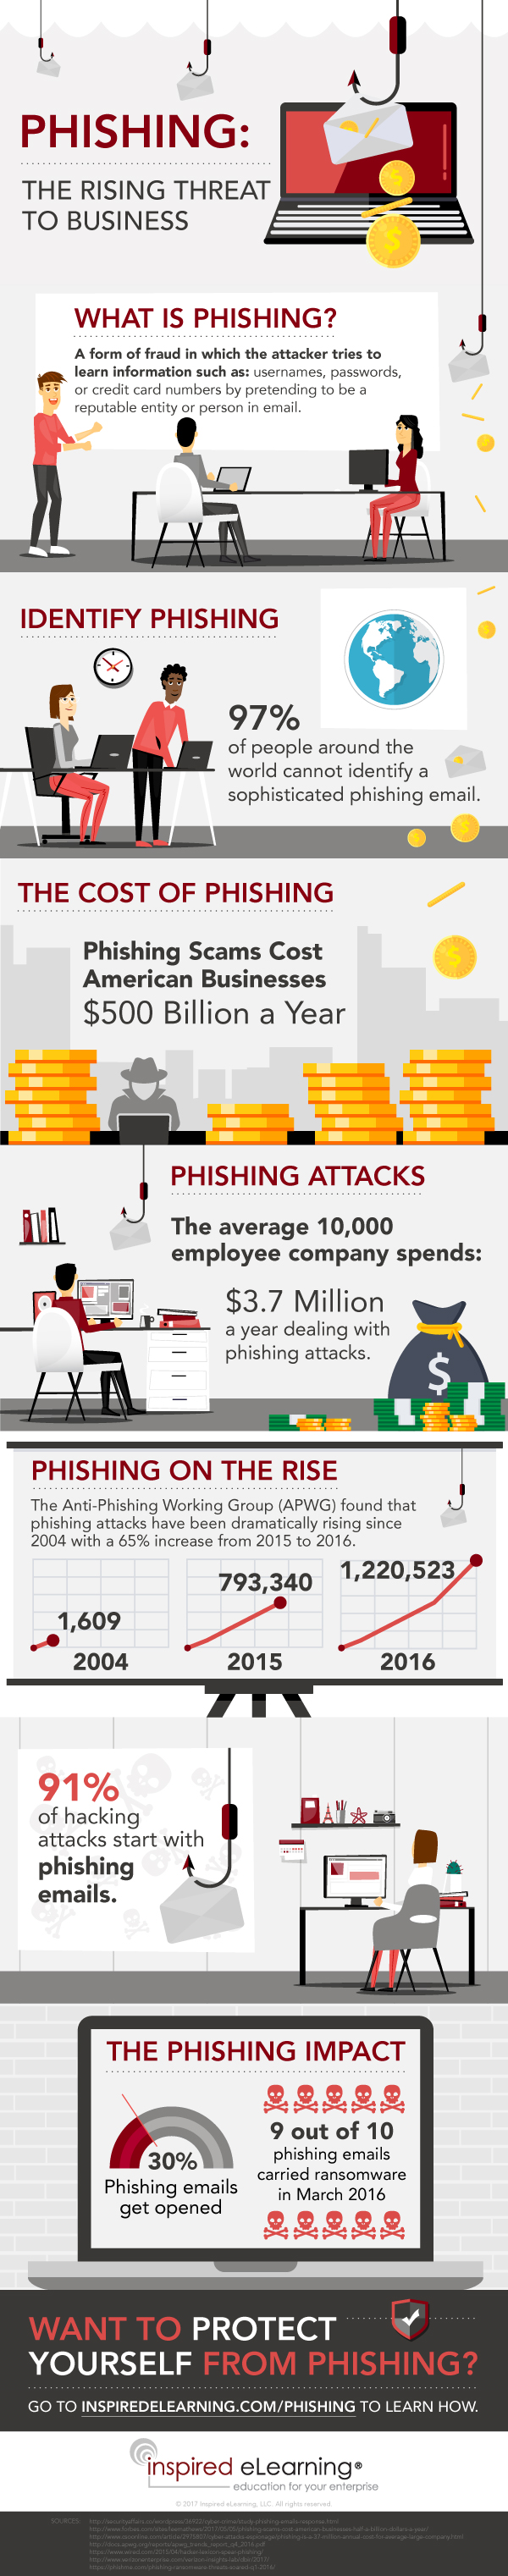 Phishing - The Rising Threat To Business